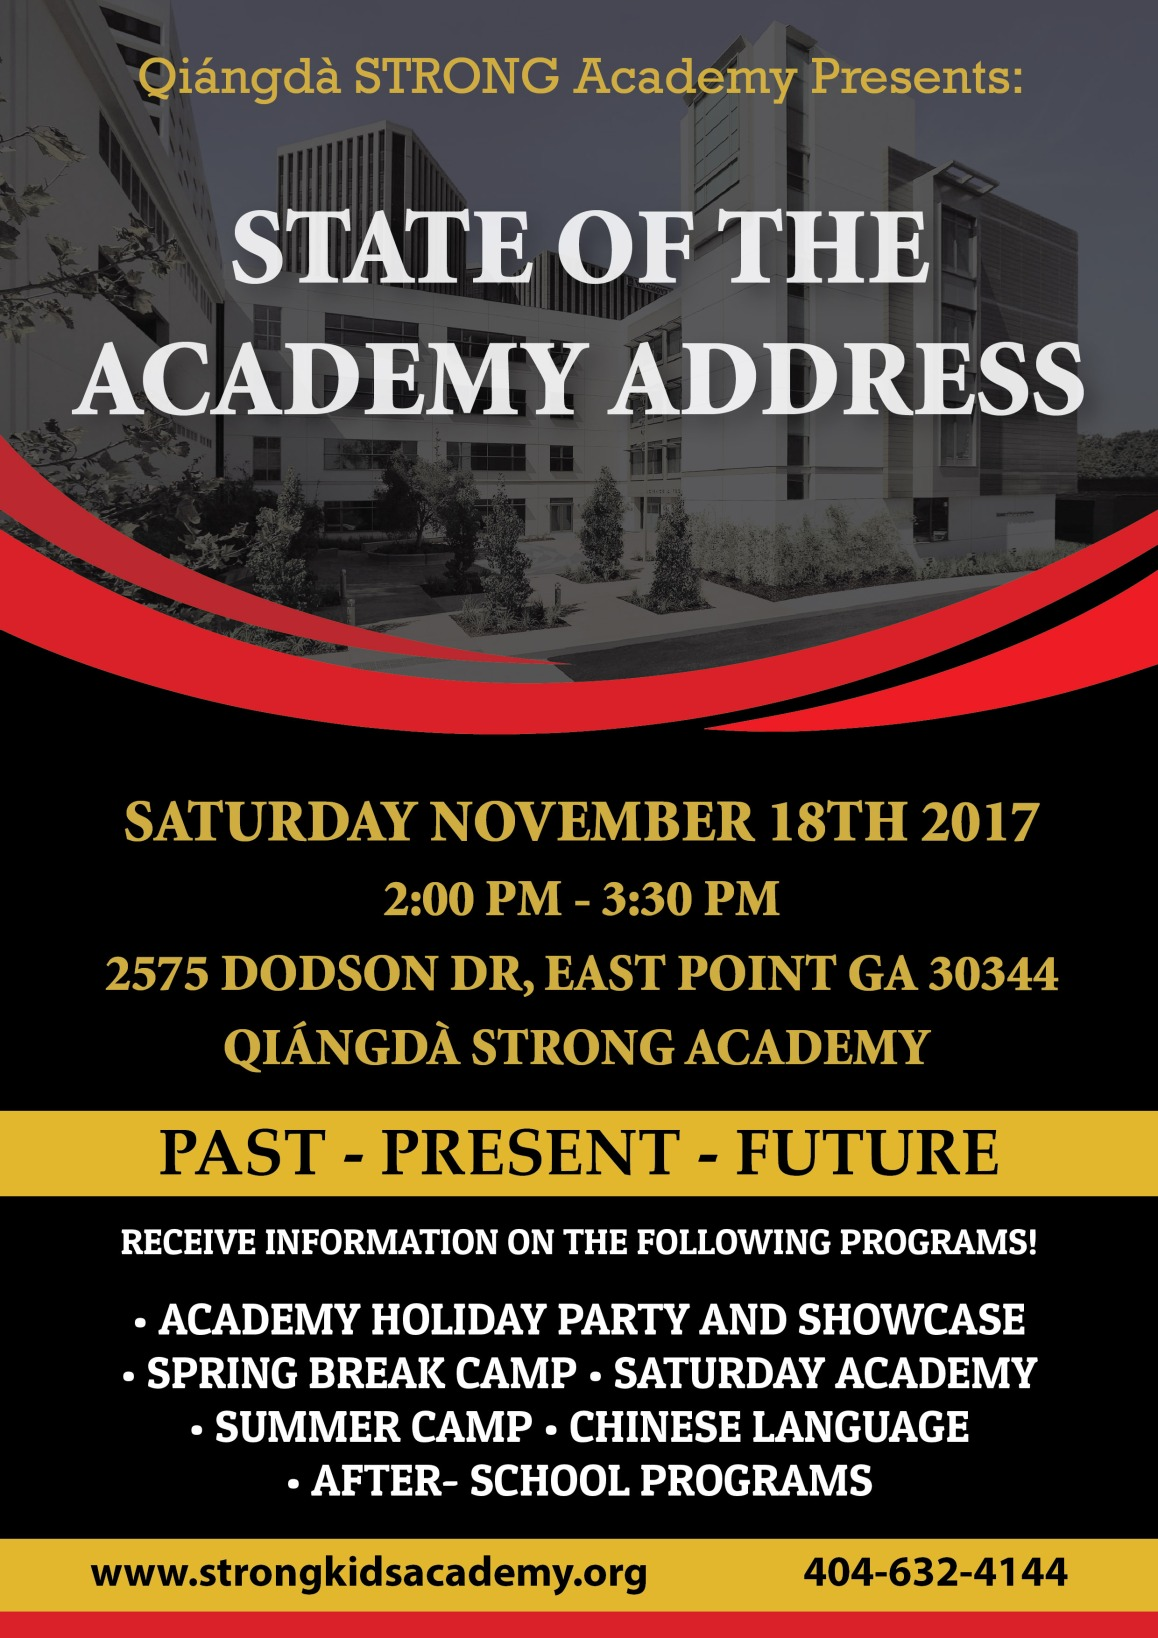 StateofAcademy.Flyer.picture